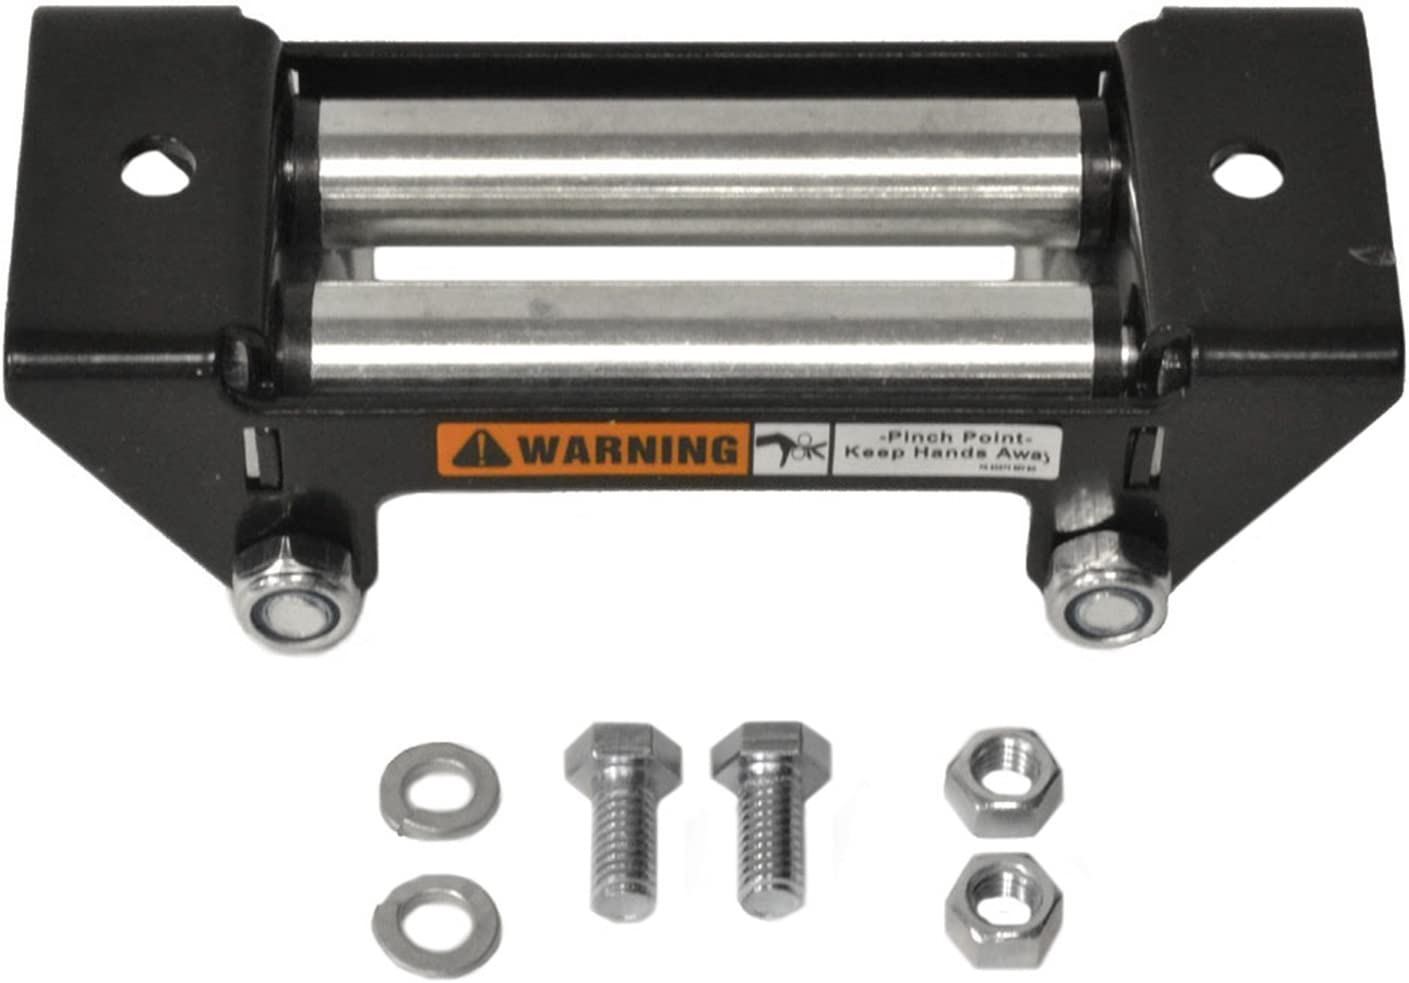 WARN 29256 Winch Roller Fairlead for RT40 and 4.0ci Winches